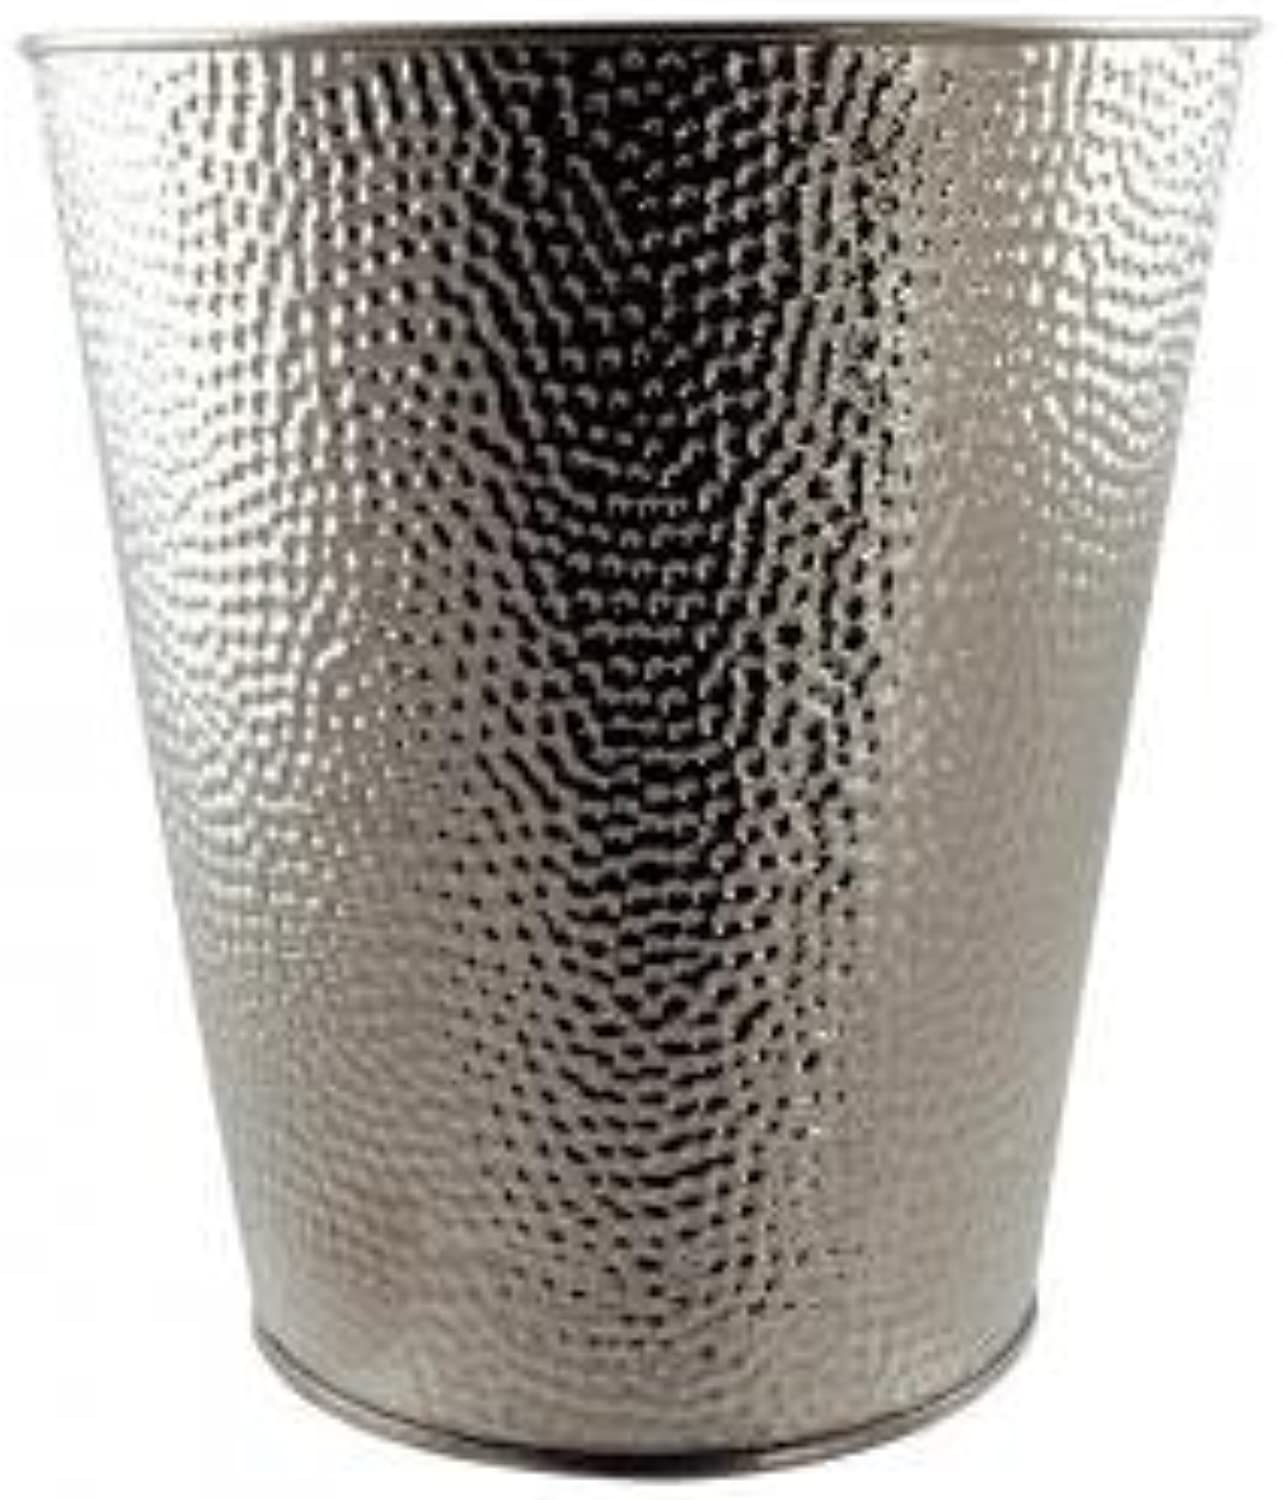 Euro-Home EW2231 5 L Deluxe S S Hammered Waste Bin